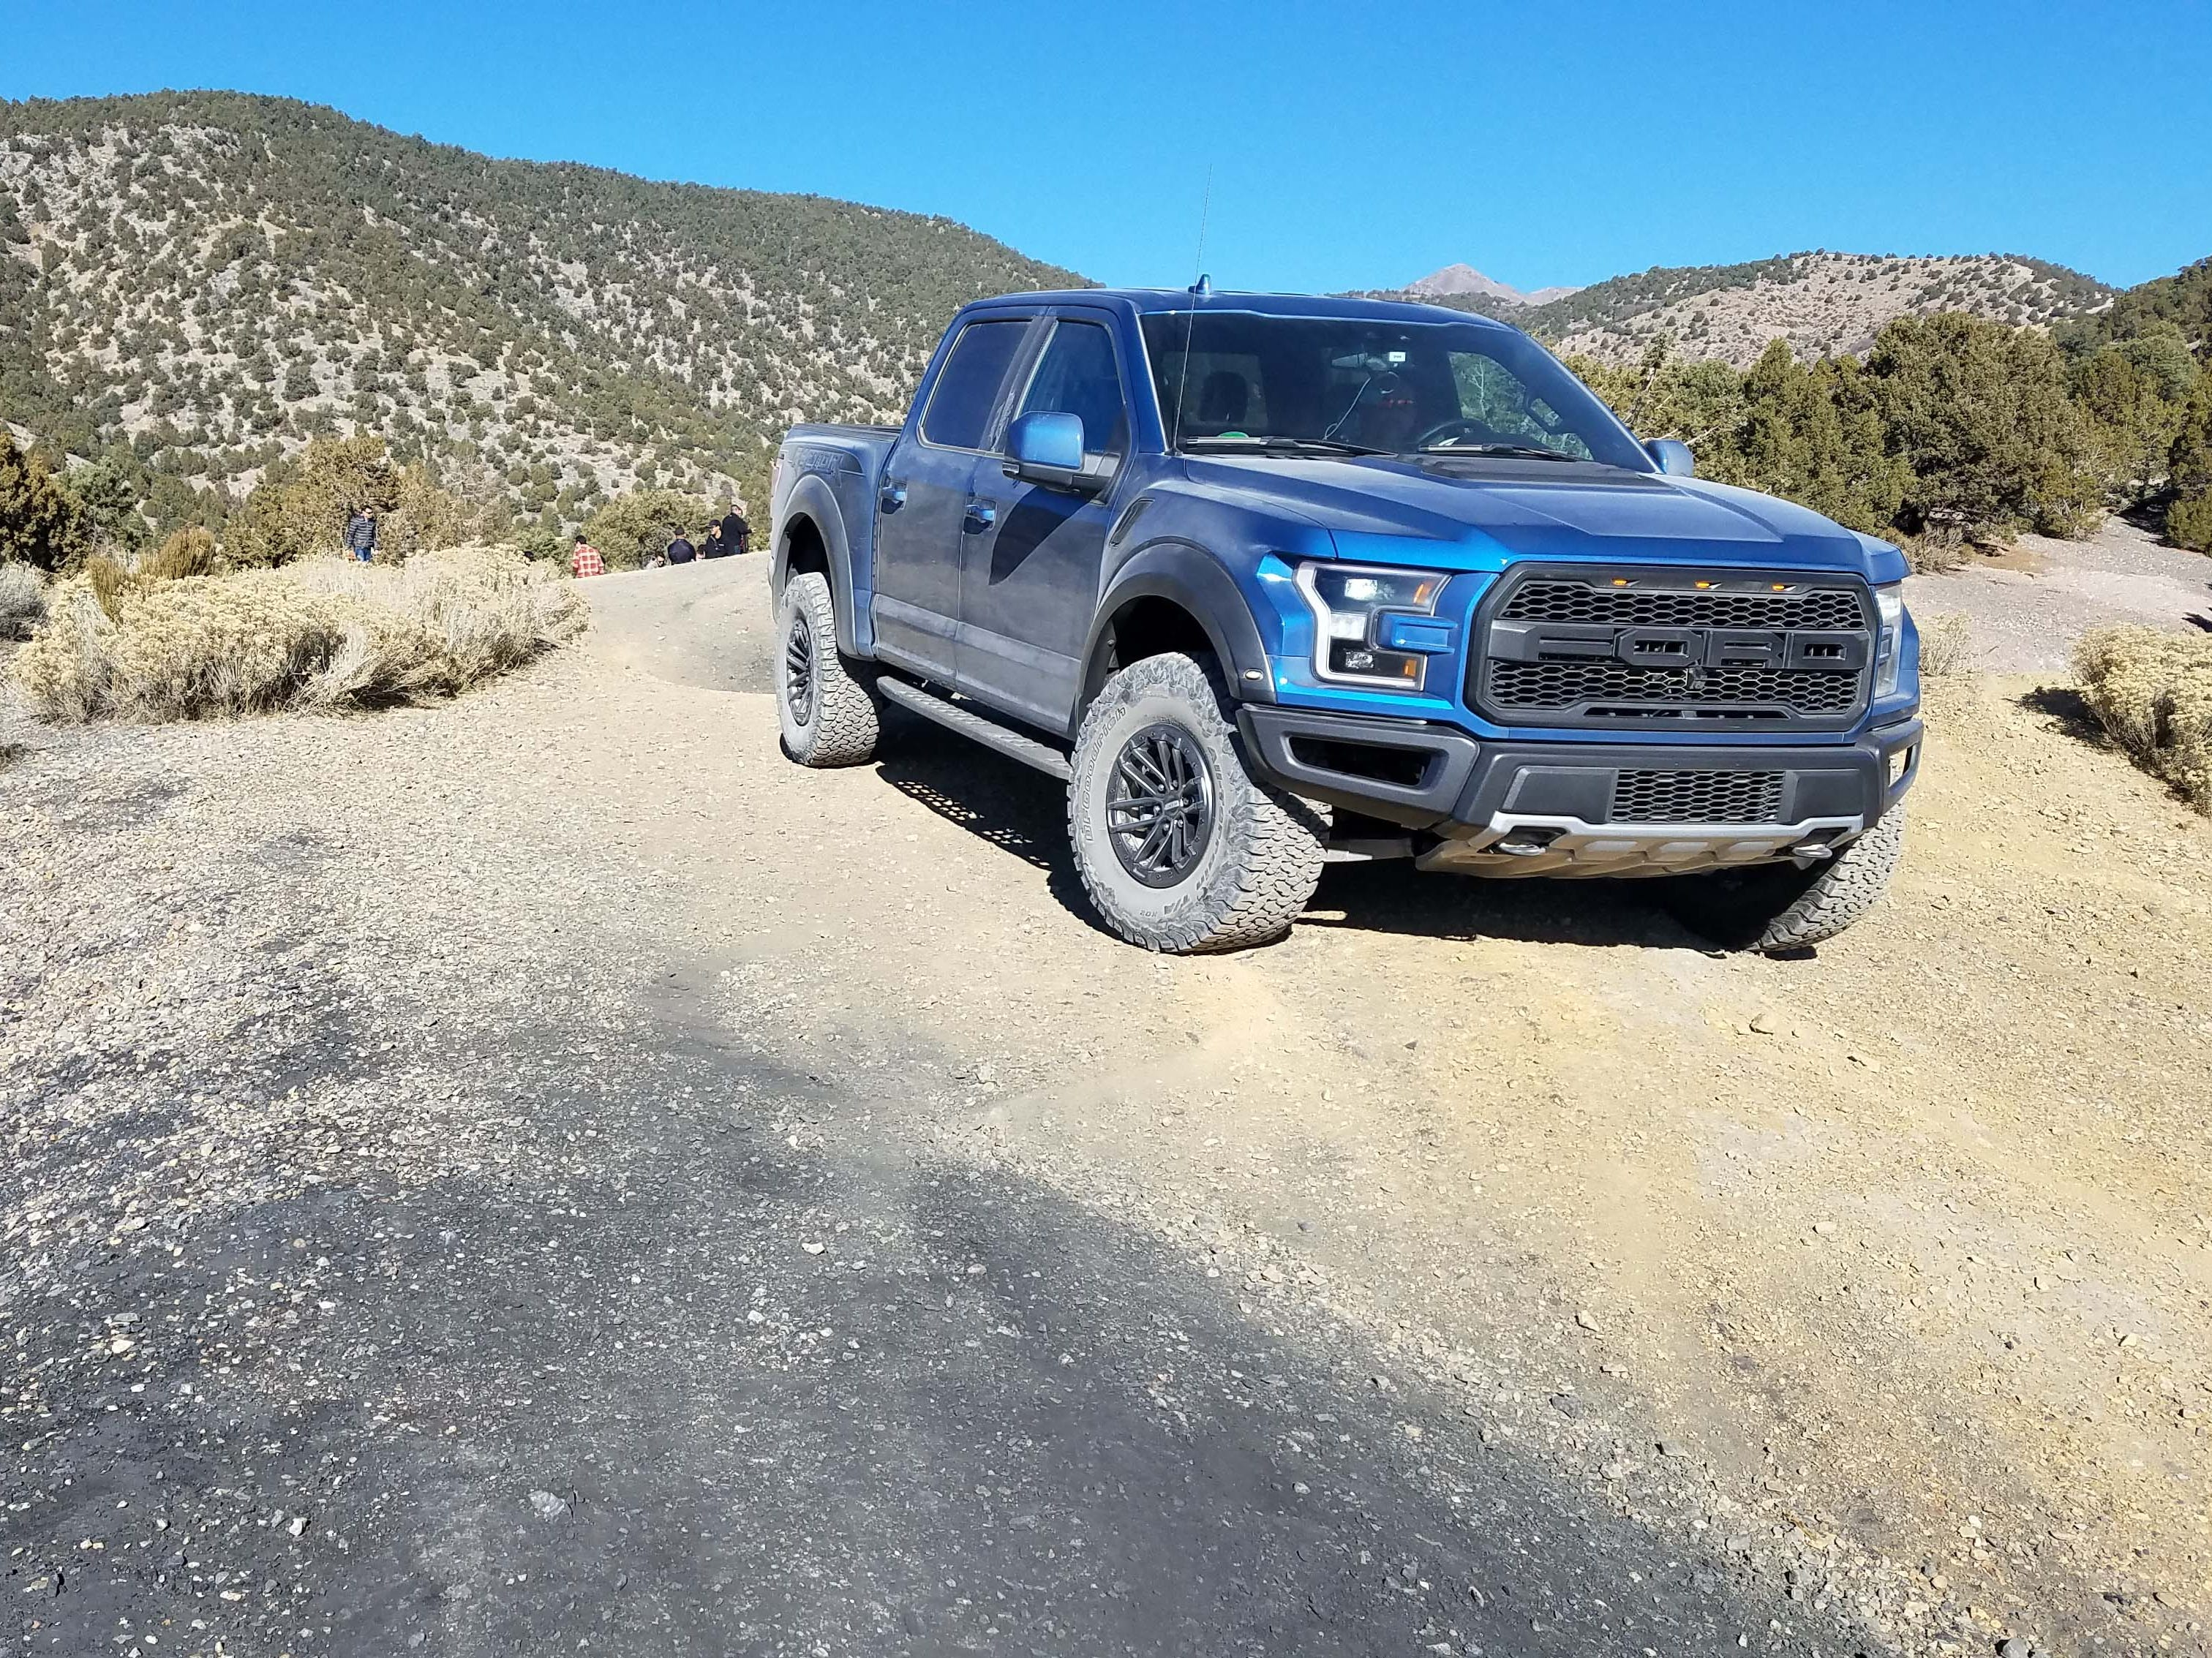 King of the hill. The 2019 Ford F-150 Raptor can go almost anywhere with its size, speed and rugged build.